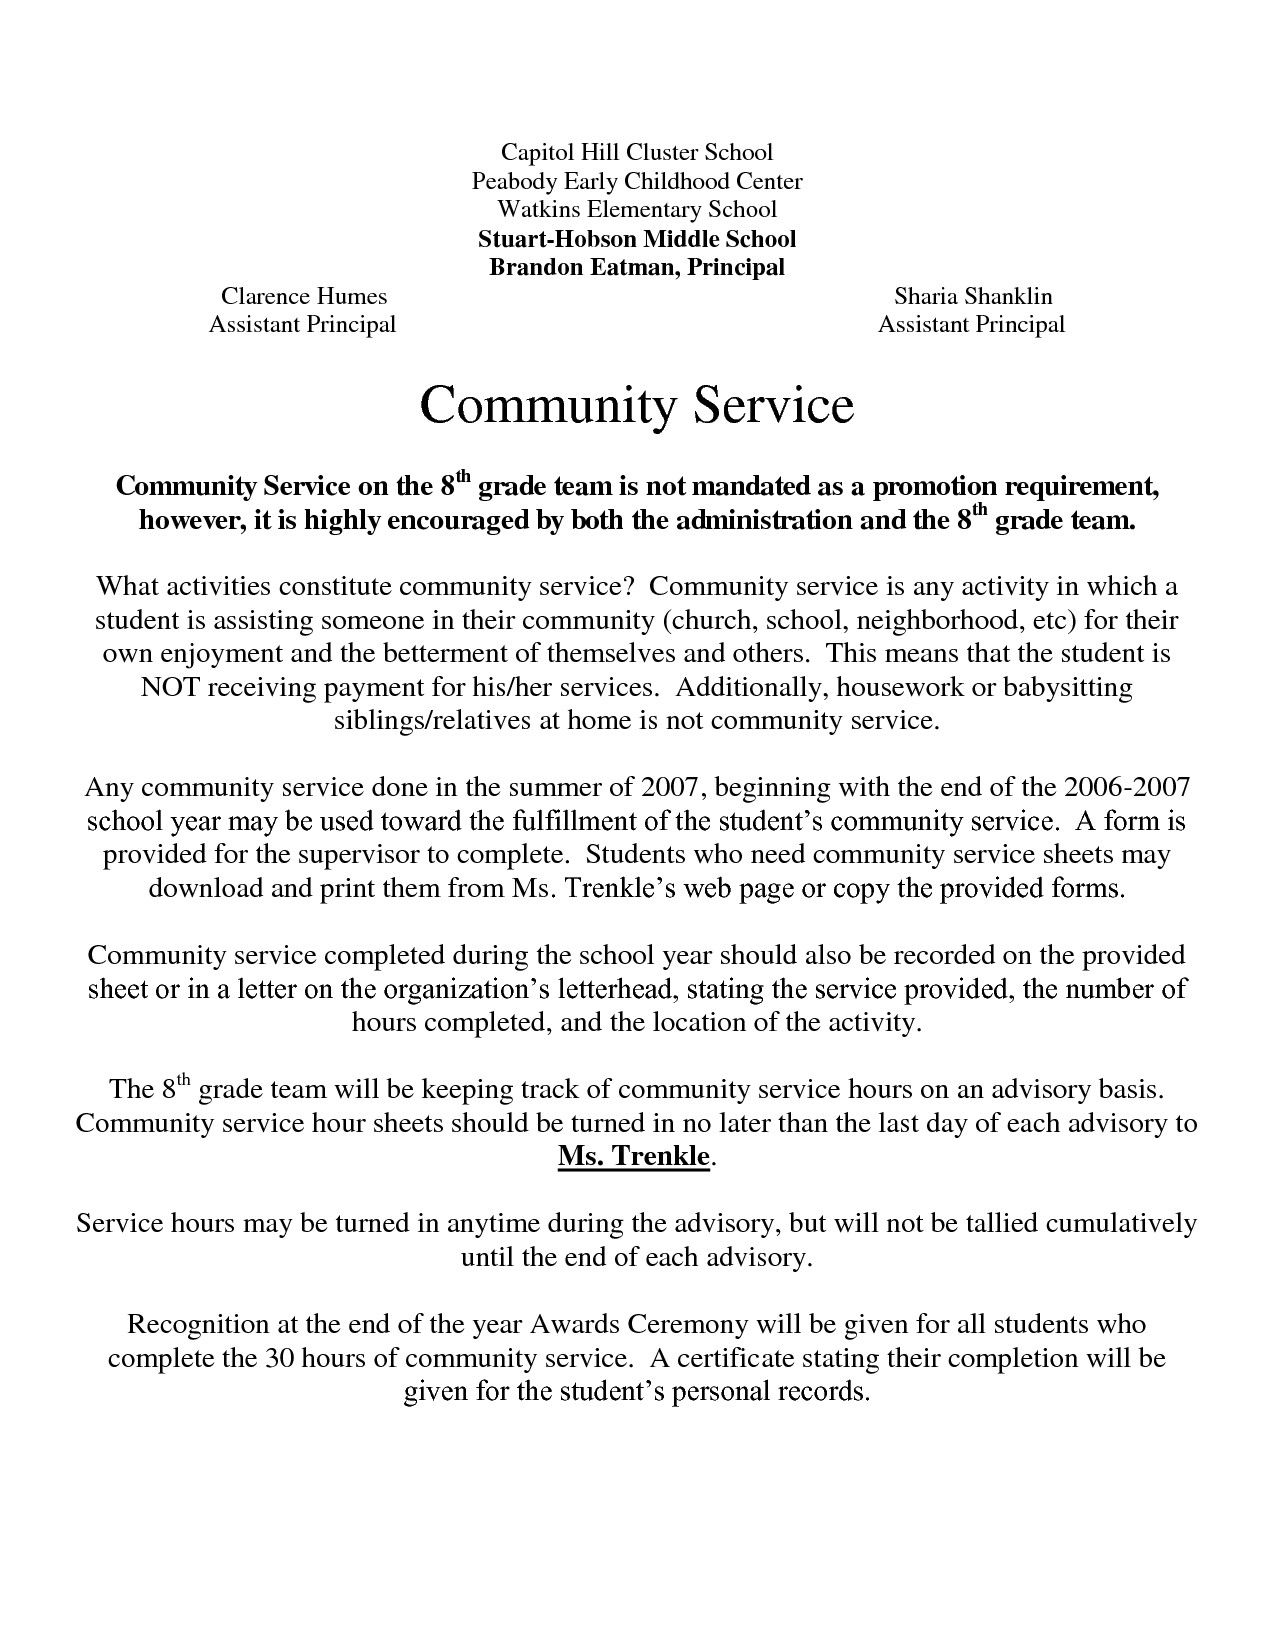 Community Service Hours Completion Letter Template Lovely